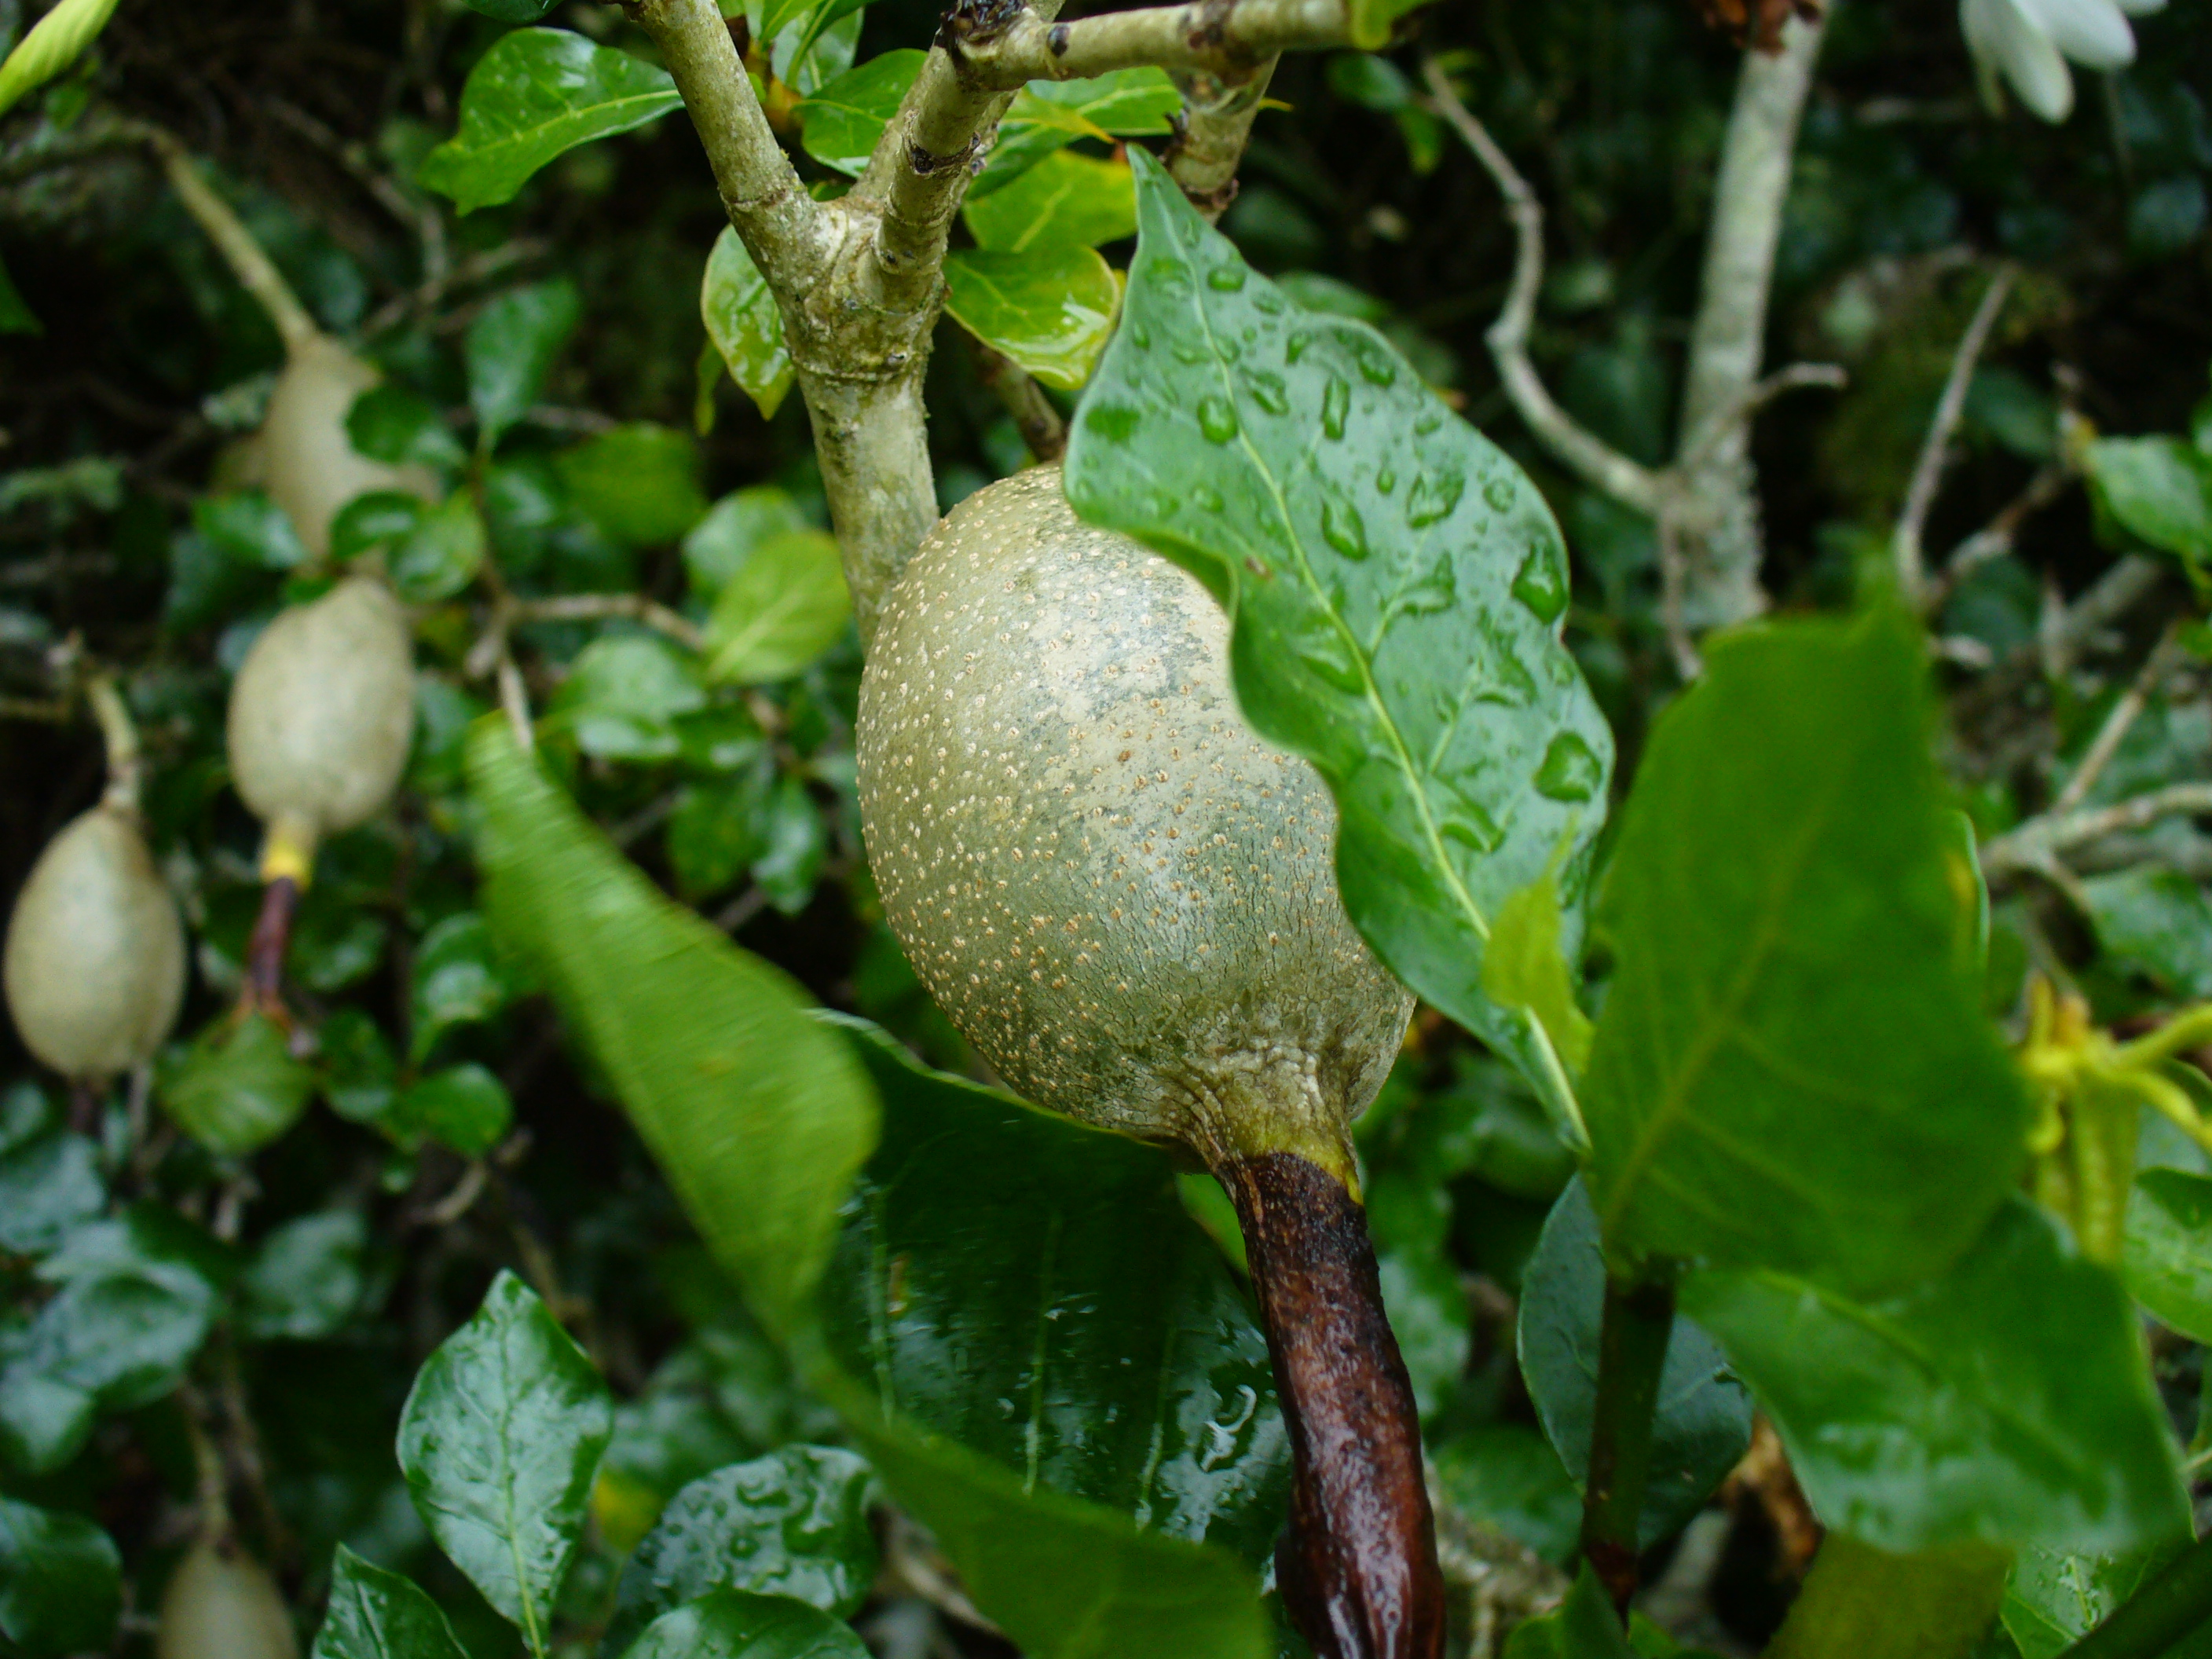 File:Gardenia thunbergia fruit..jpg